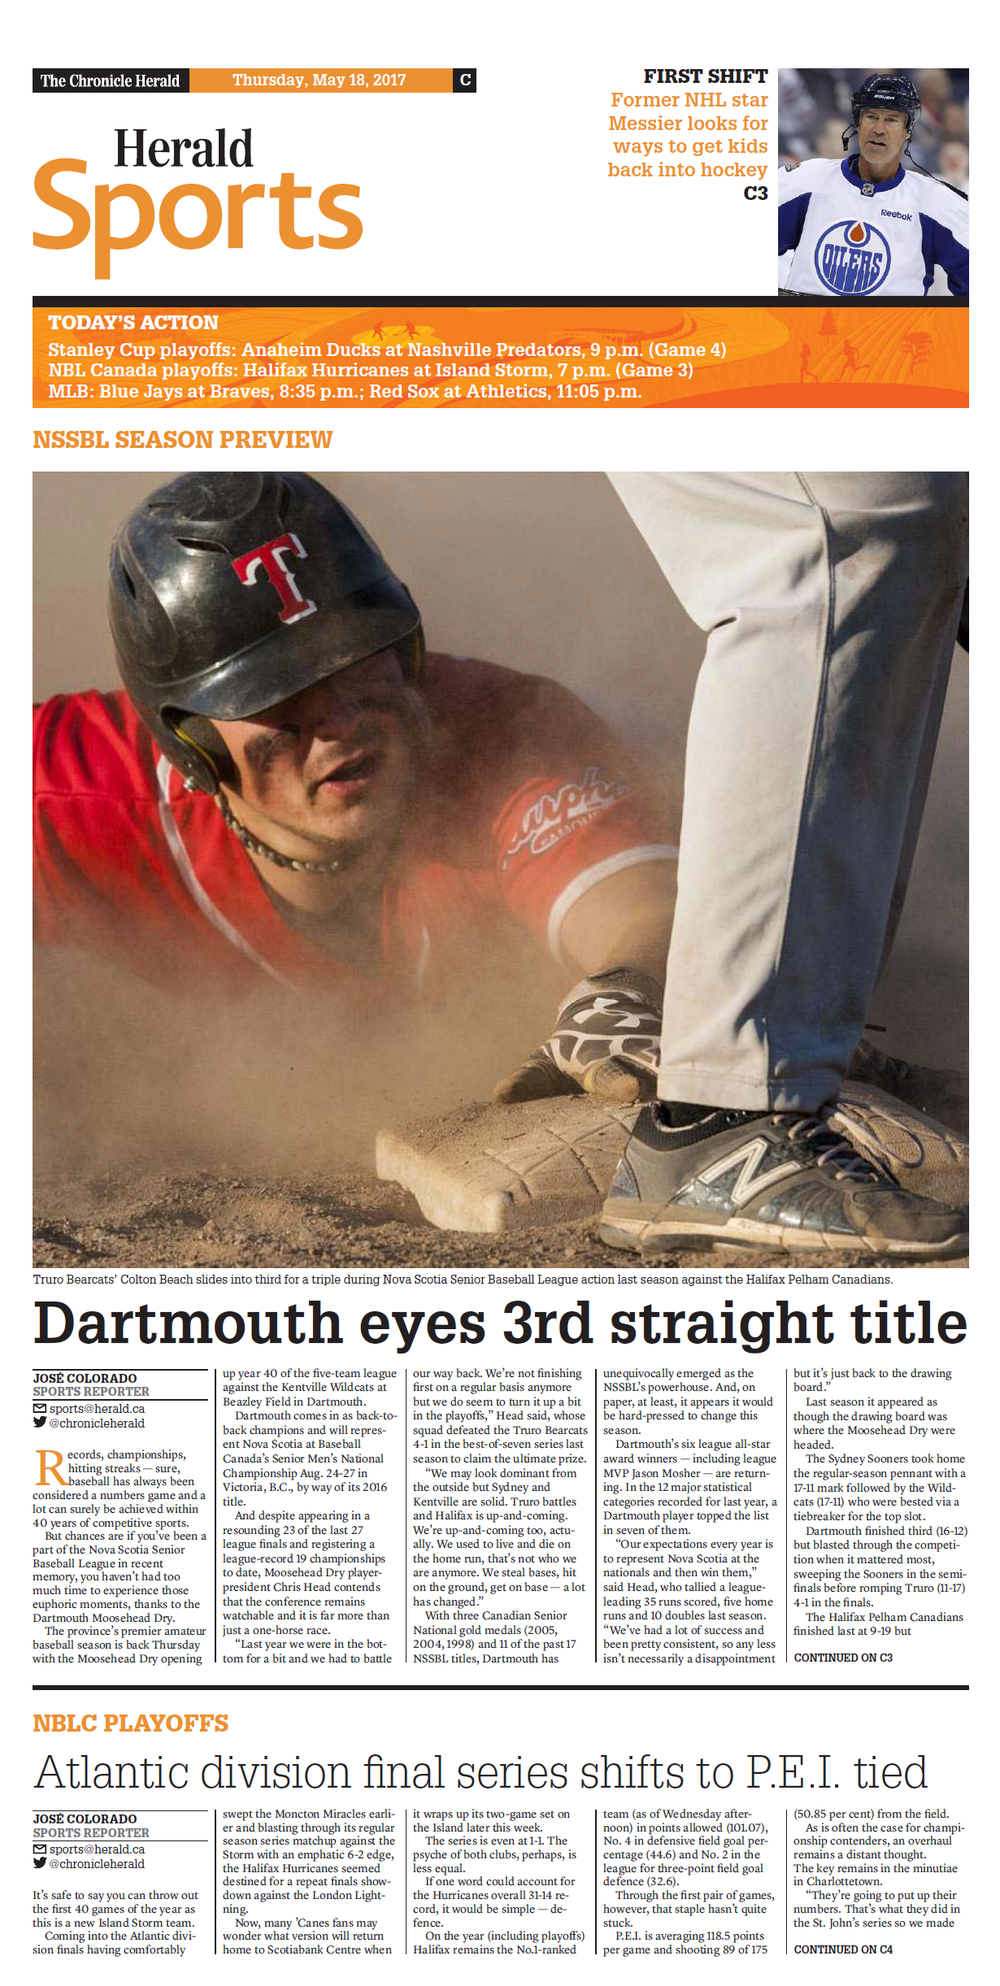 DARTMOUTH EYES 3RD STRAIGHT TITLE - Dartmouth, N.S. - May 18, 2017